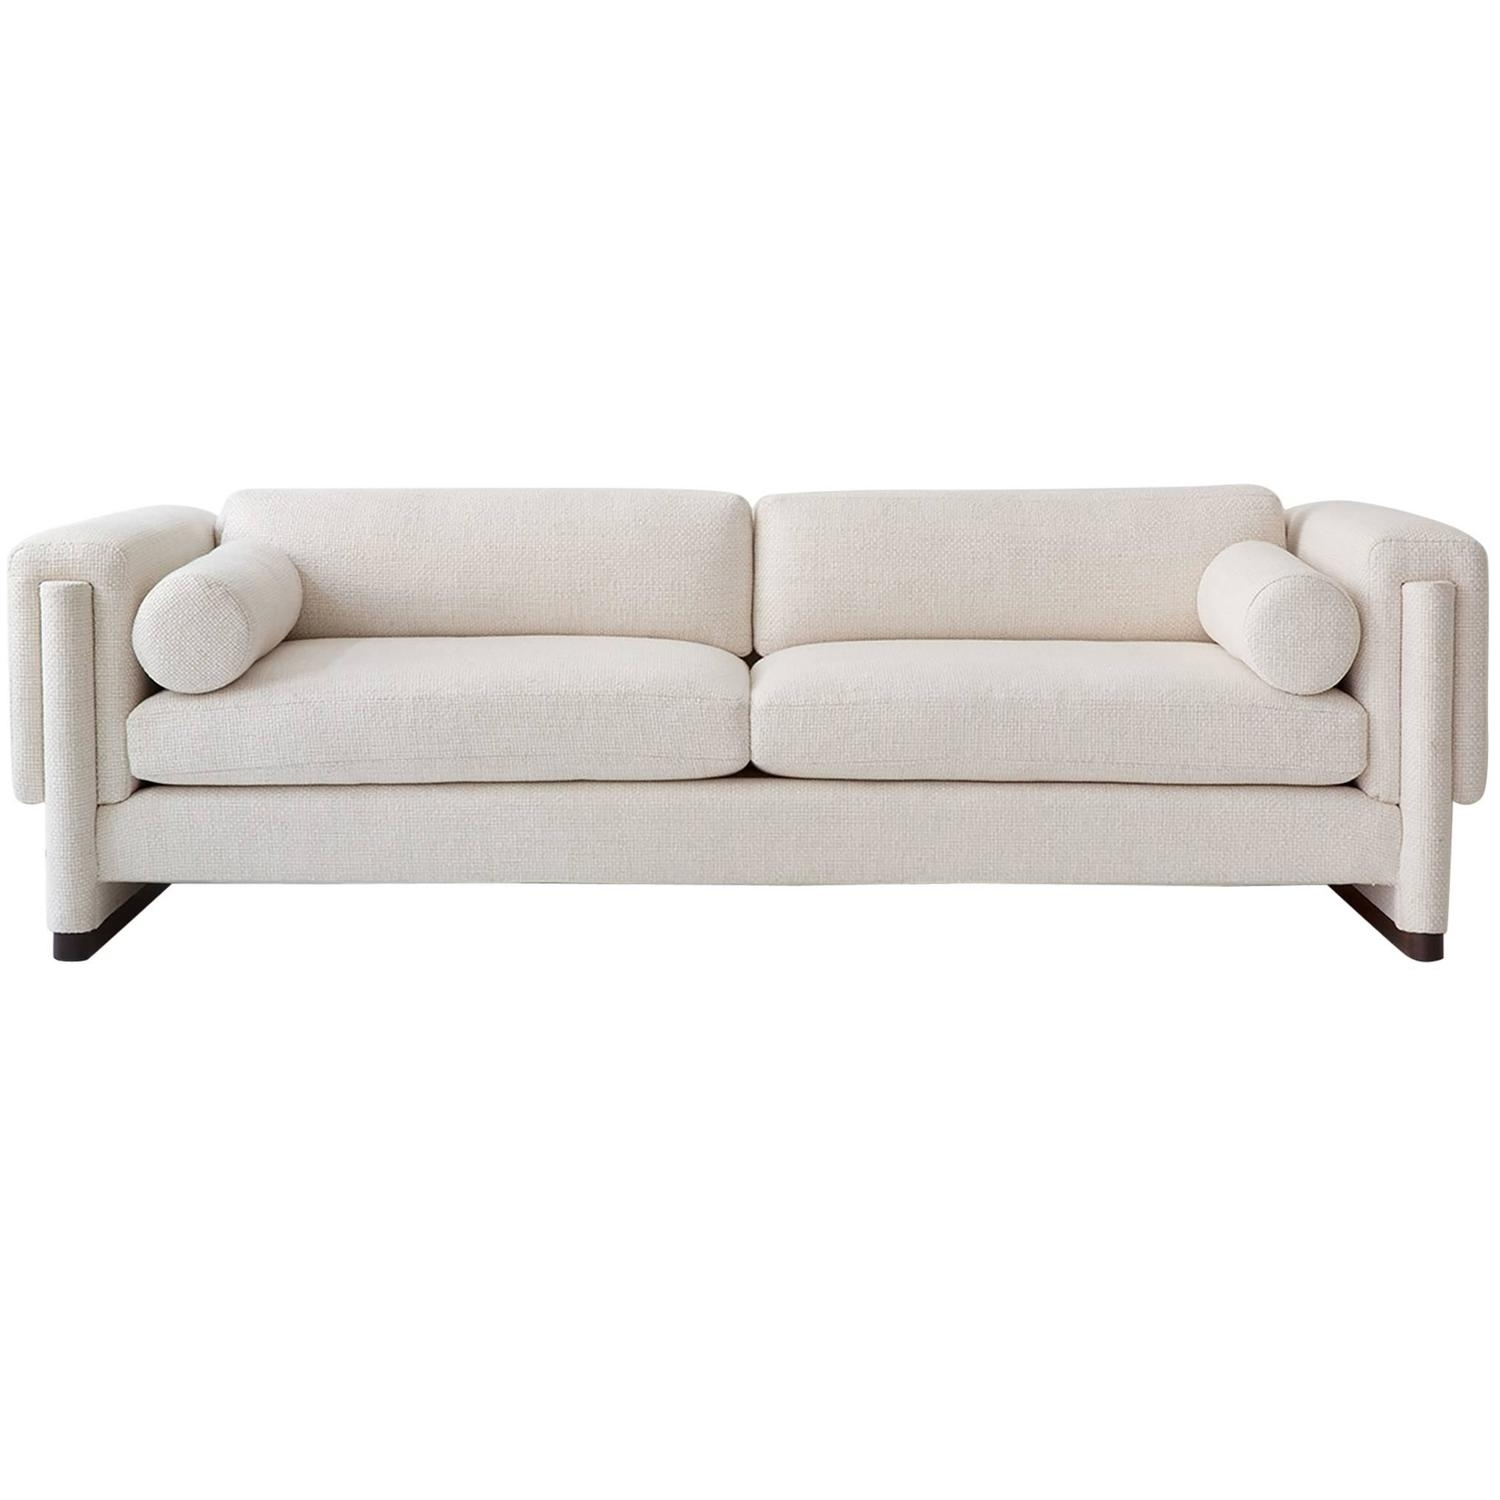 Art Deco Sofas – 131 For Sale At 1Stdibs In Art Deco Sofas (Image 5 of 10)